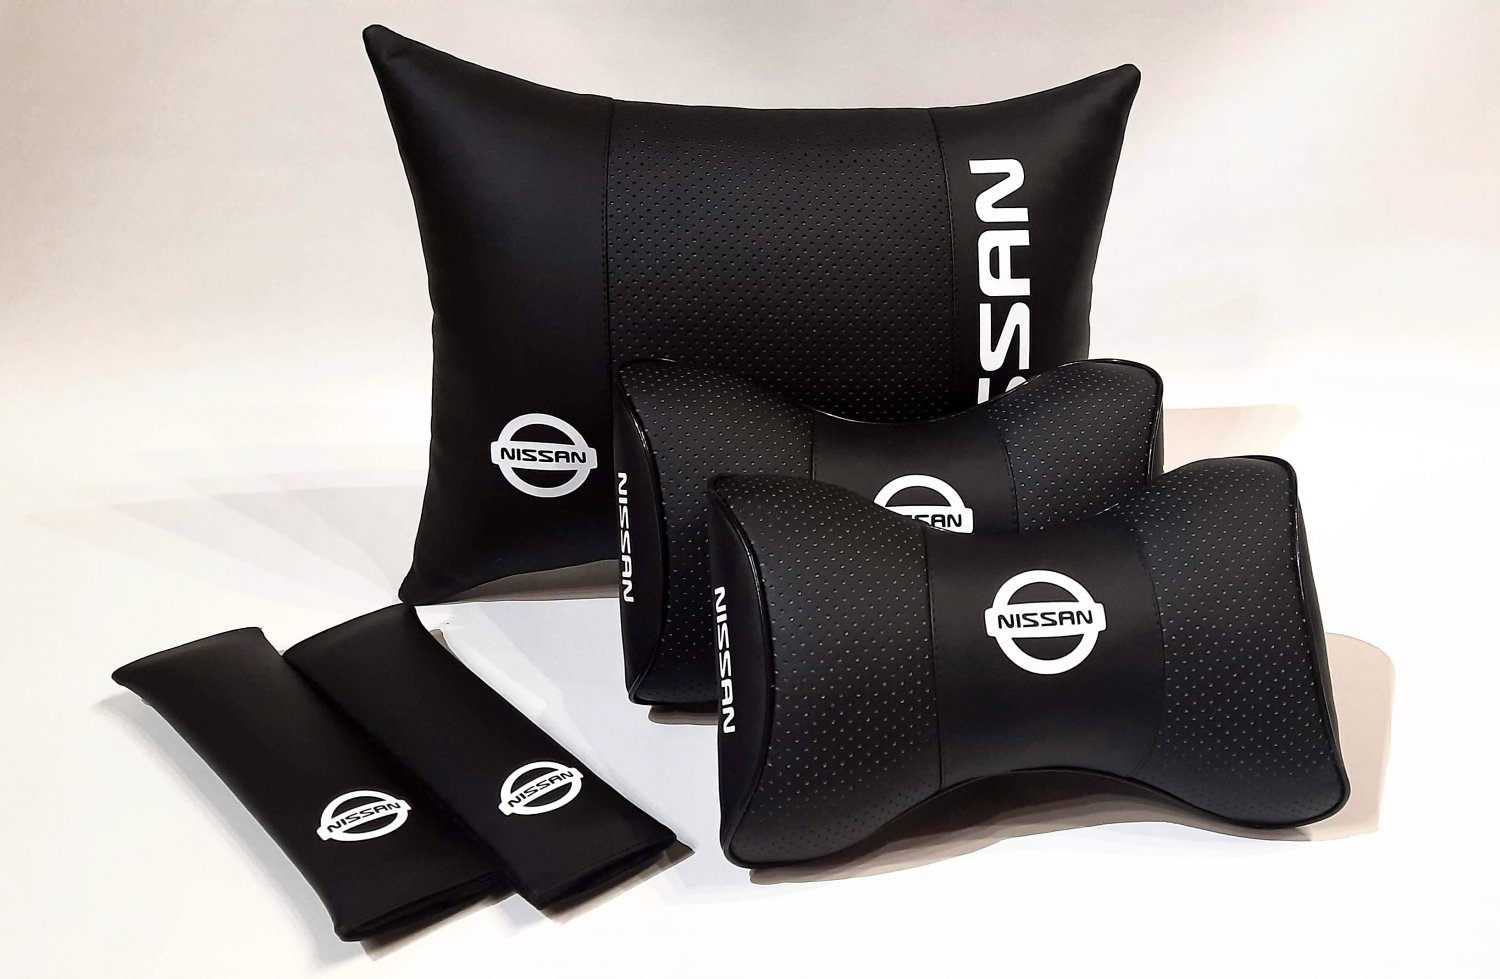 Headrest Back Rest Auto Pillow Set 5units Logo Nissan Genuine PU Leather